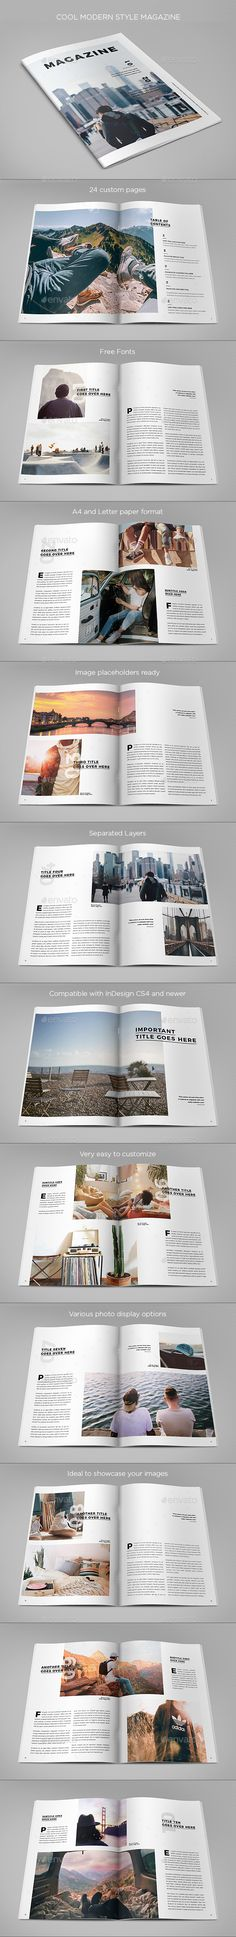 Cool Modern Style Magazine Template InDesign INDD